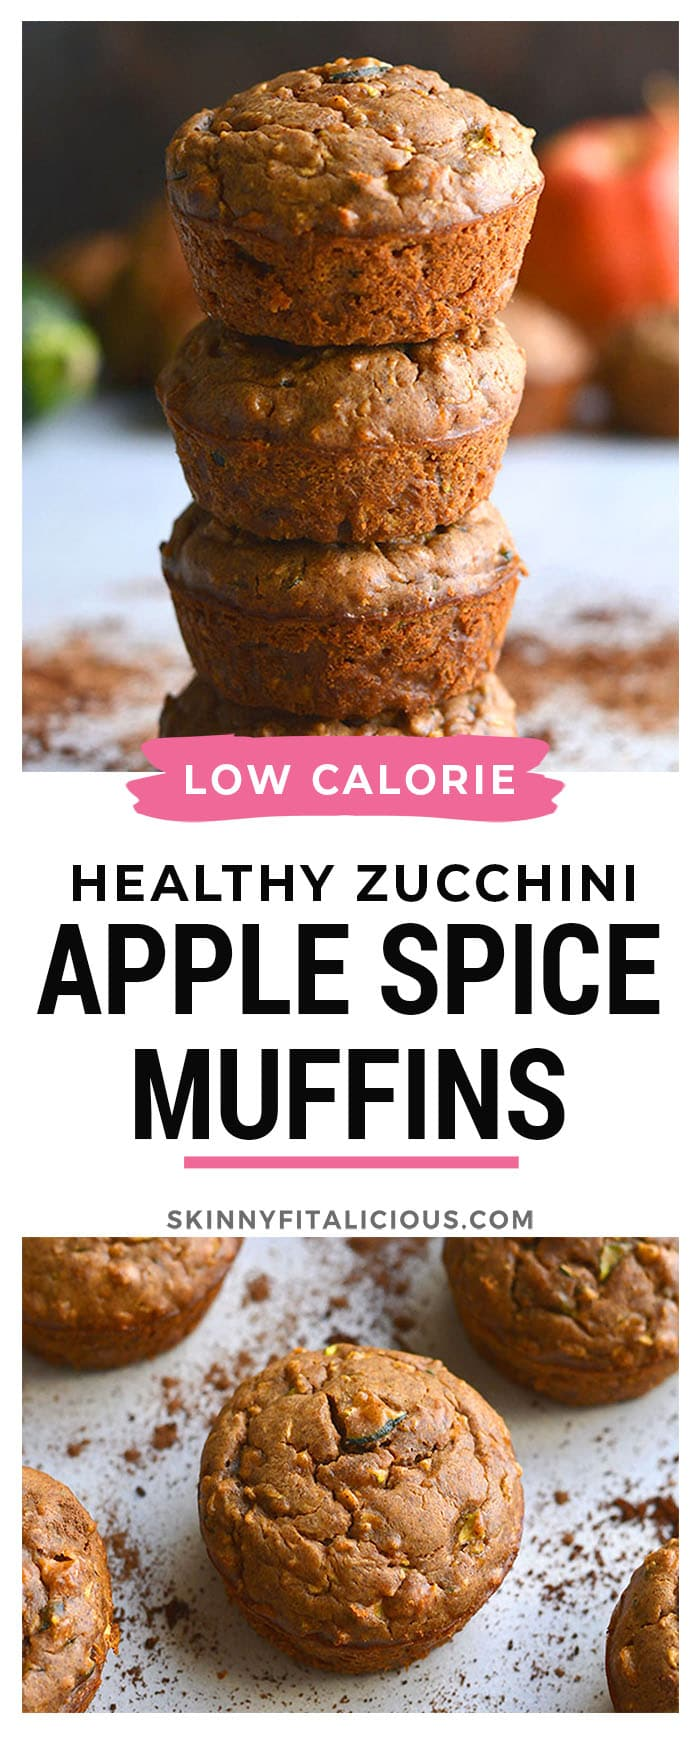 Healthy Zucchini Apple Spice Muffins are a low calorie muffin recipe made flourless with more protein and lower carbs. An easy snack recipe with warm spices!